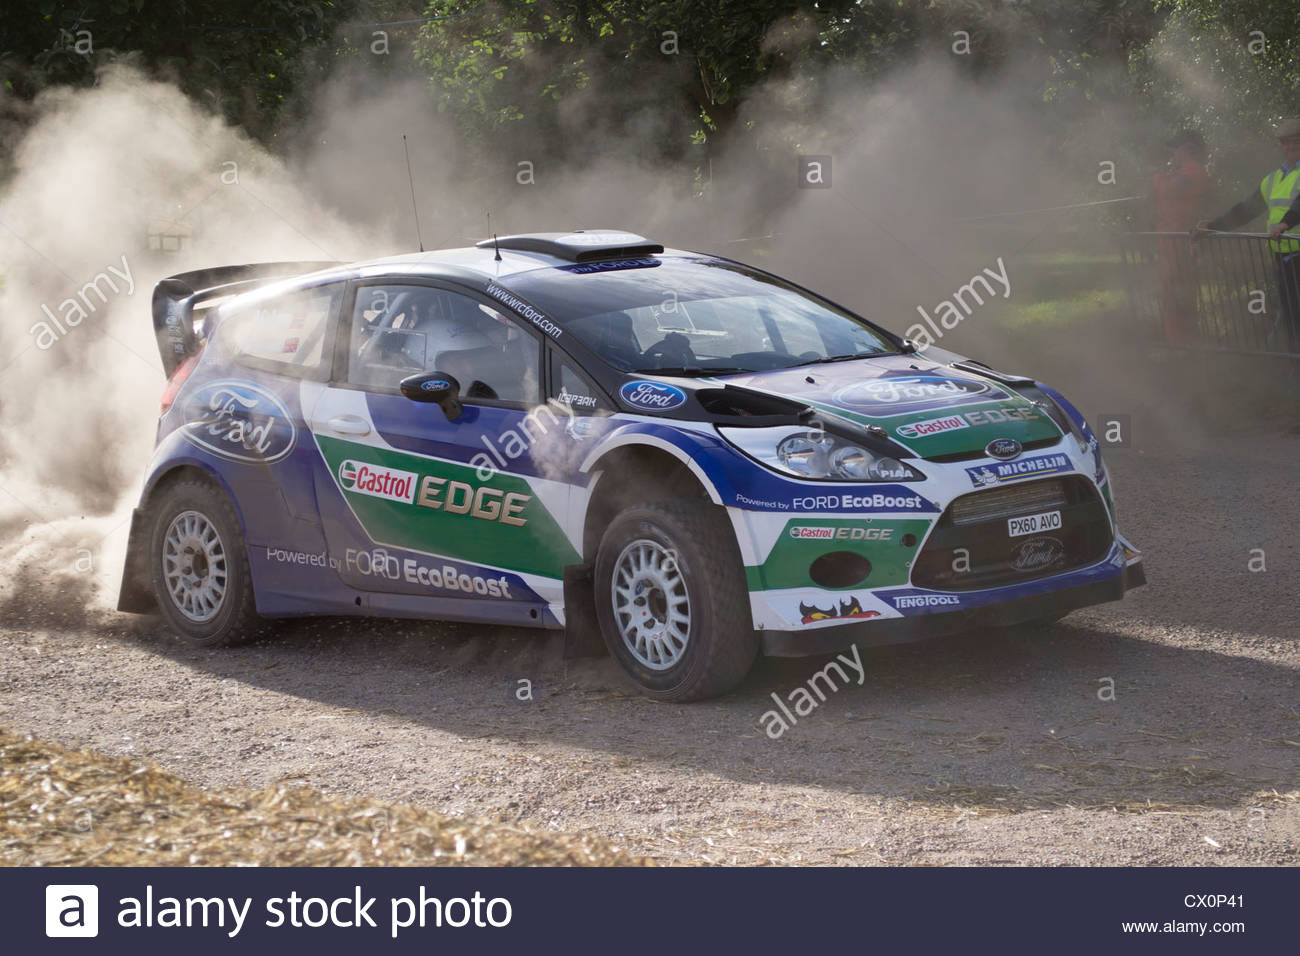 Rally Driving Stock Photos & Rally Driving Stock Images - Alamy